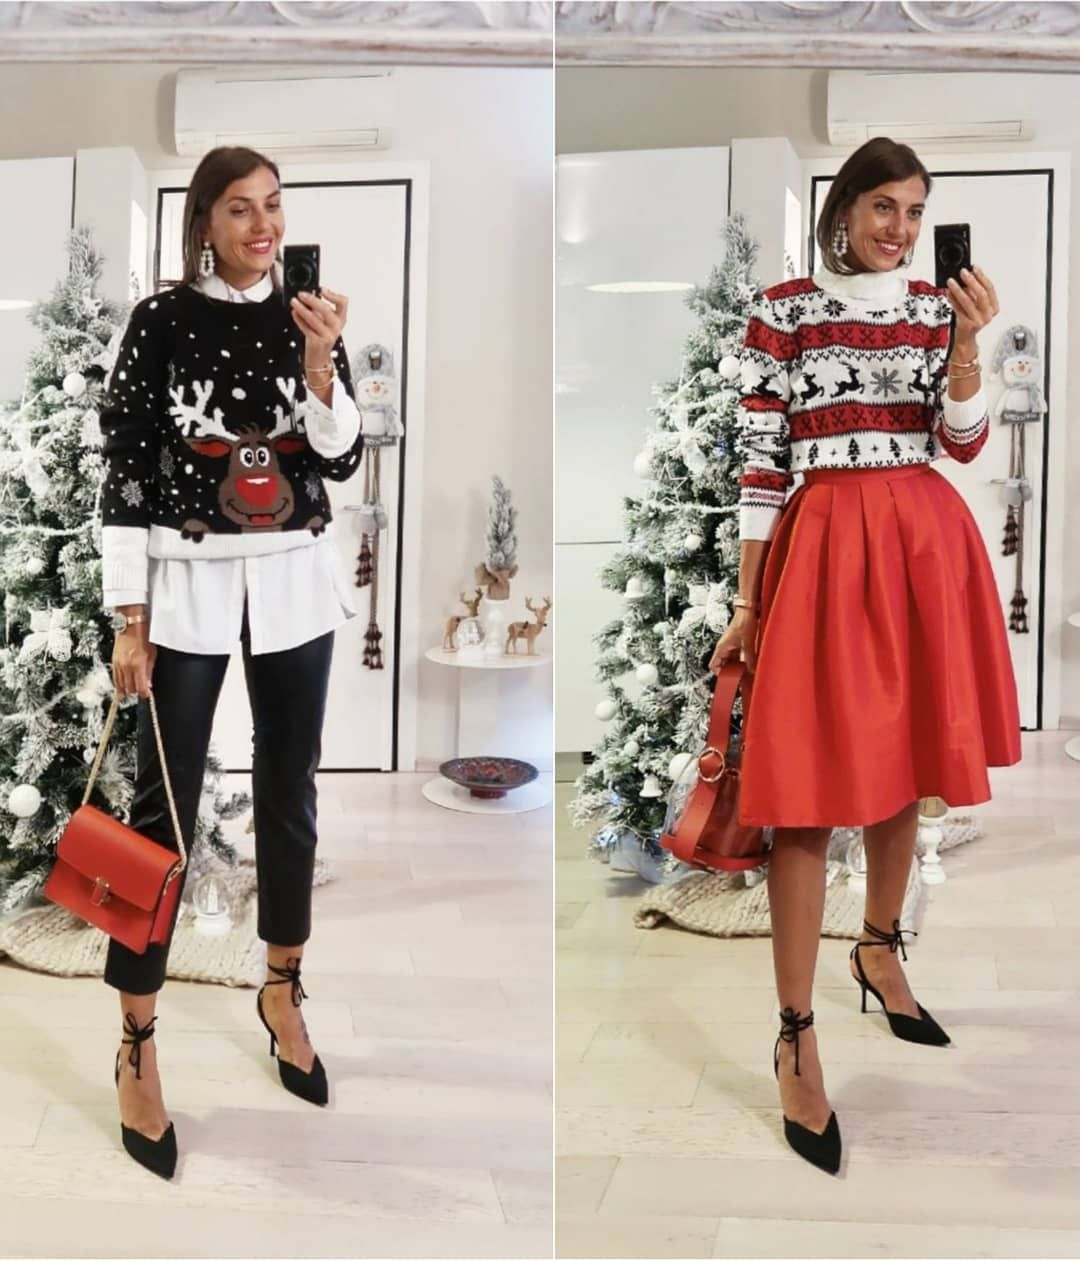 """Cristina Surdu's Instagram post: """"5 outfits with the  #christmas #sweaters 🎅🎅🎅. Your fav? And your fav #christmaslook? All sweaters are from @boohoo 🎅 •• #sweaterweather…"""""""